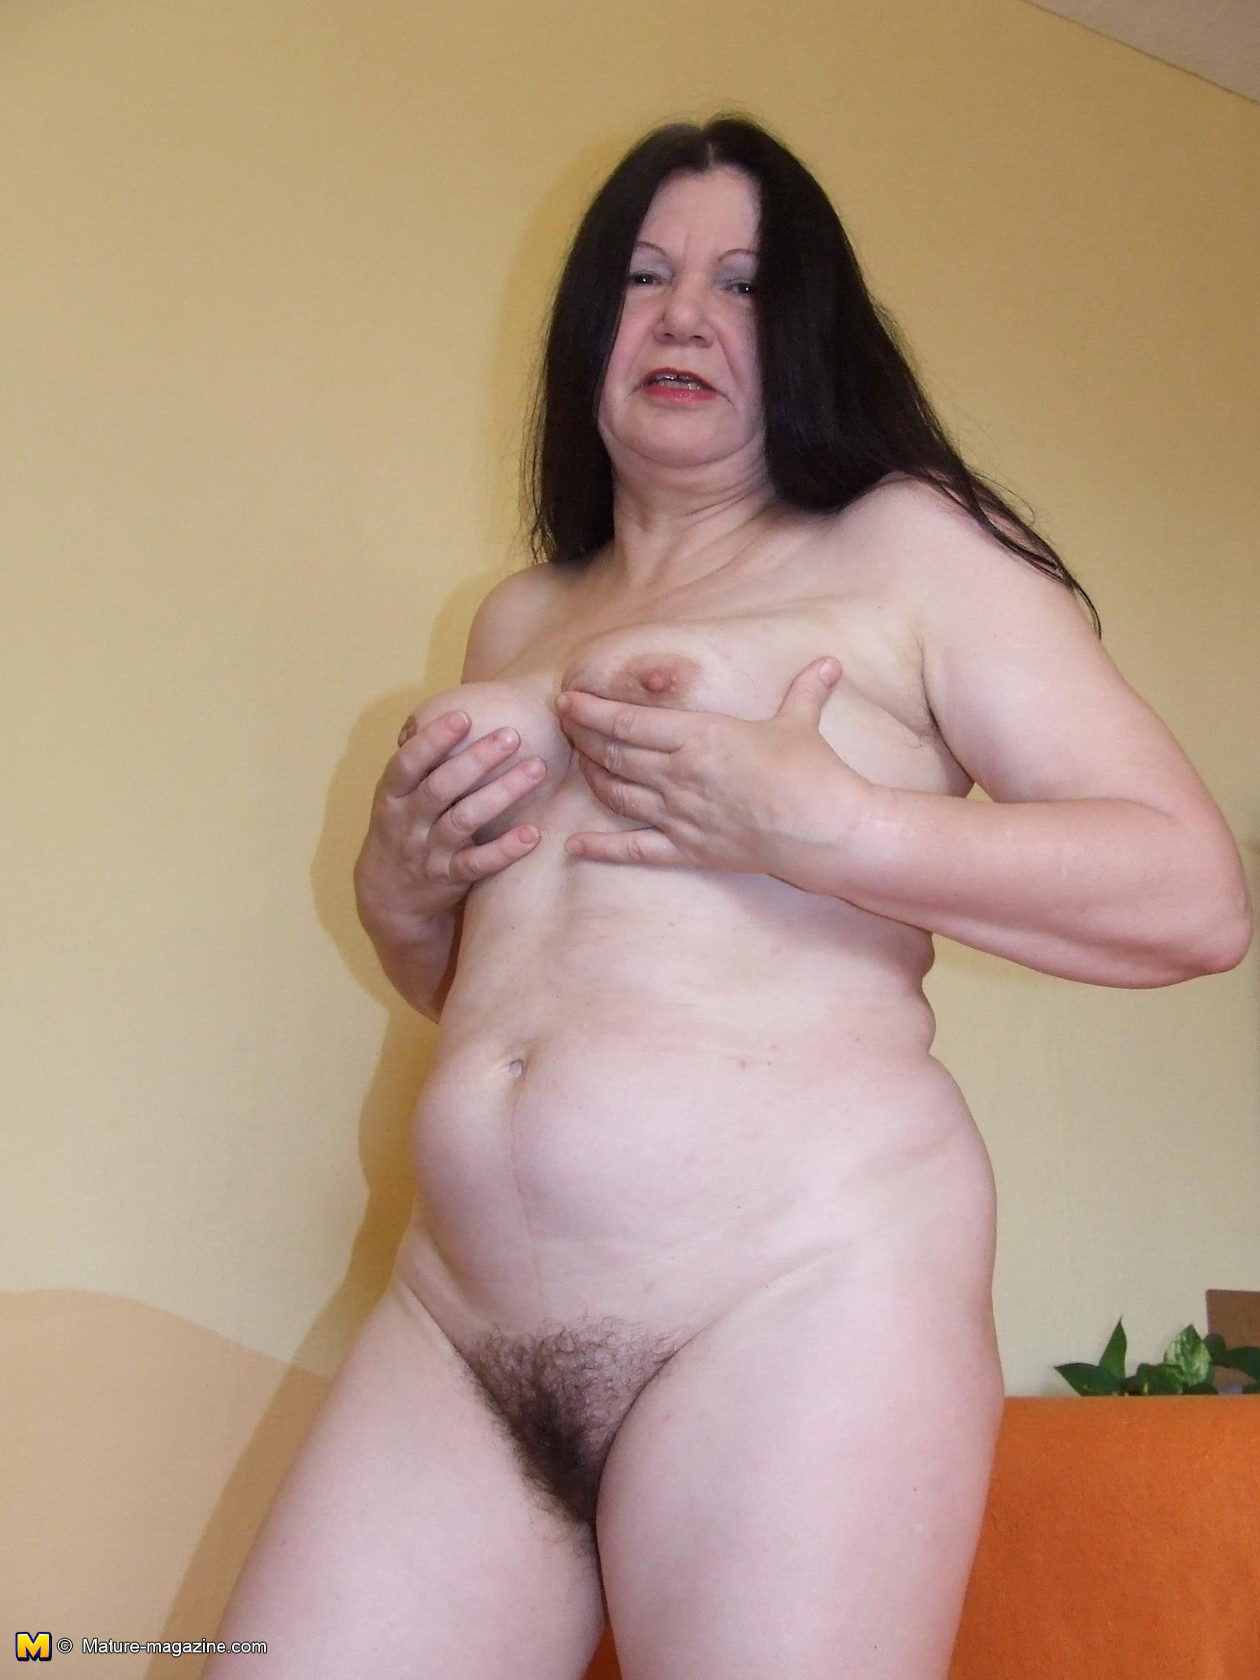 mature-naked-women-photo-gallery